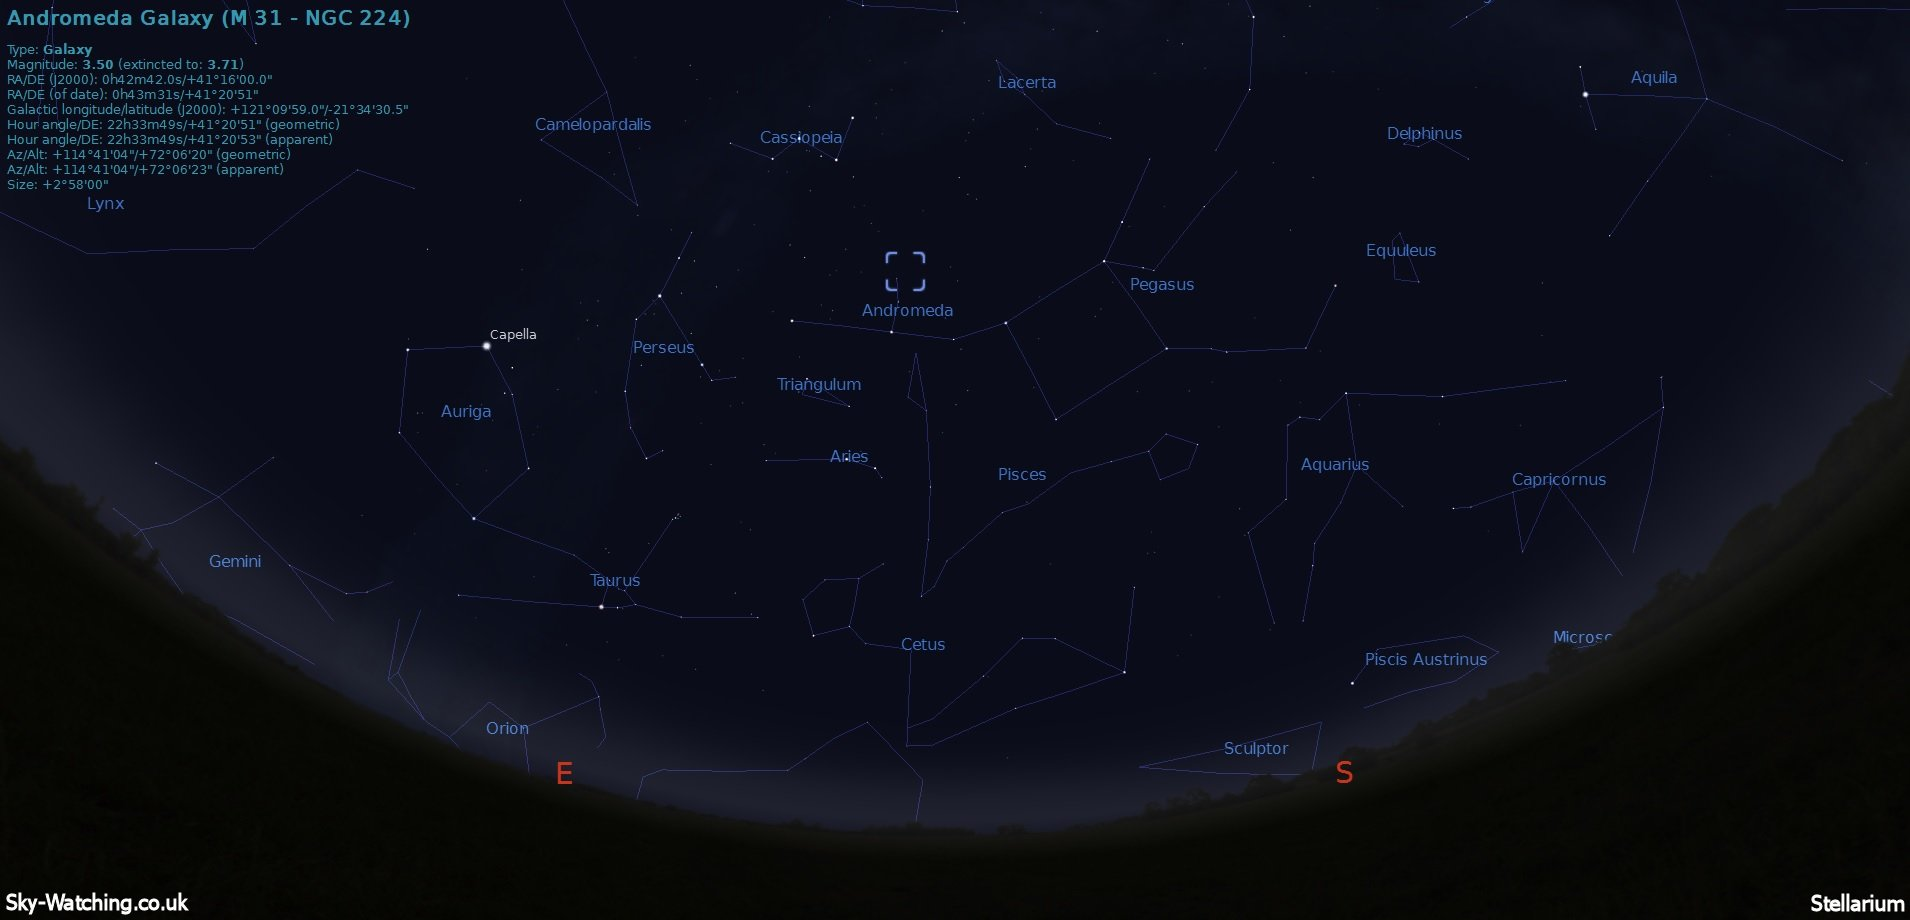 how to find andromeda galaxy in the sky